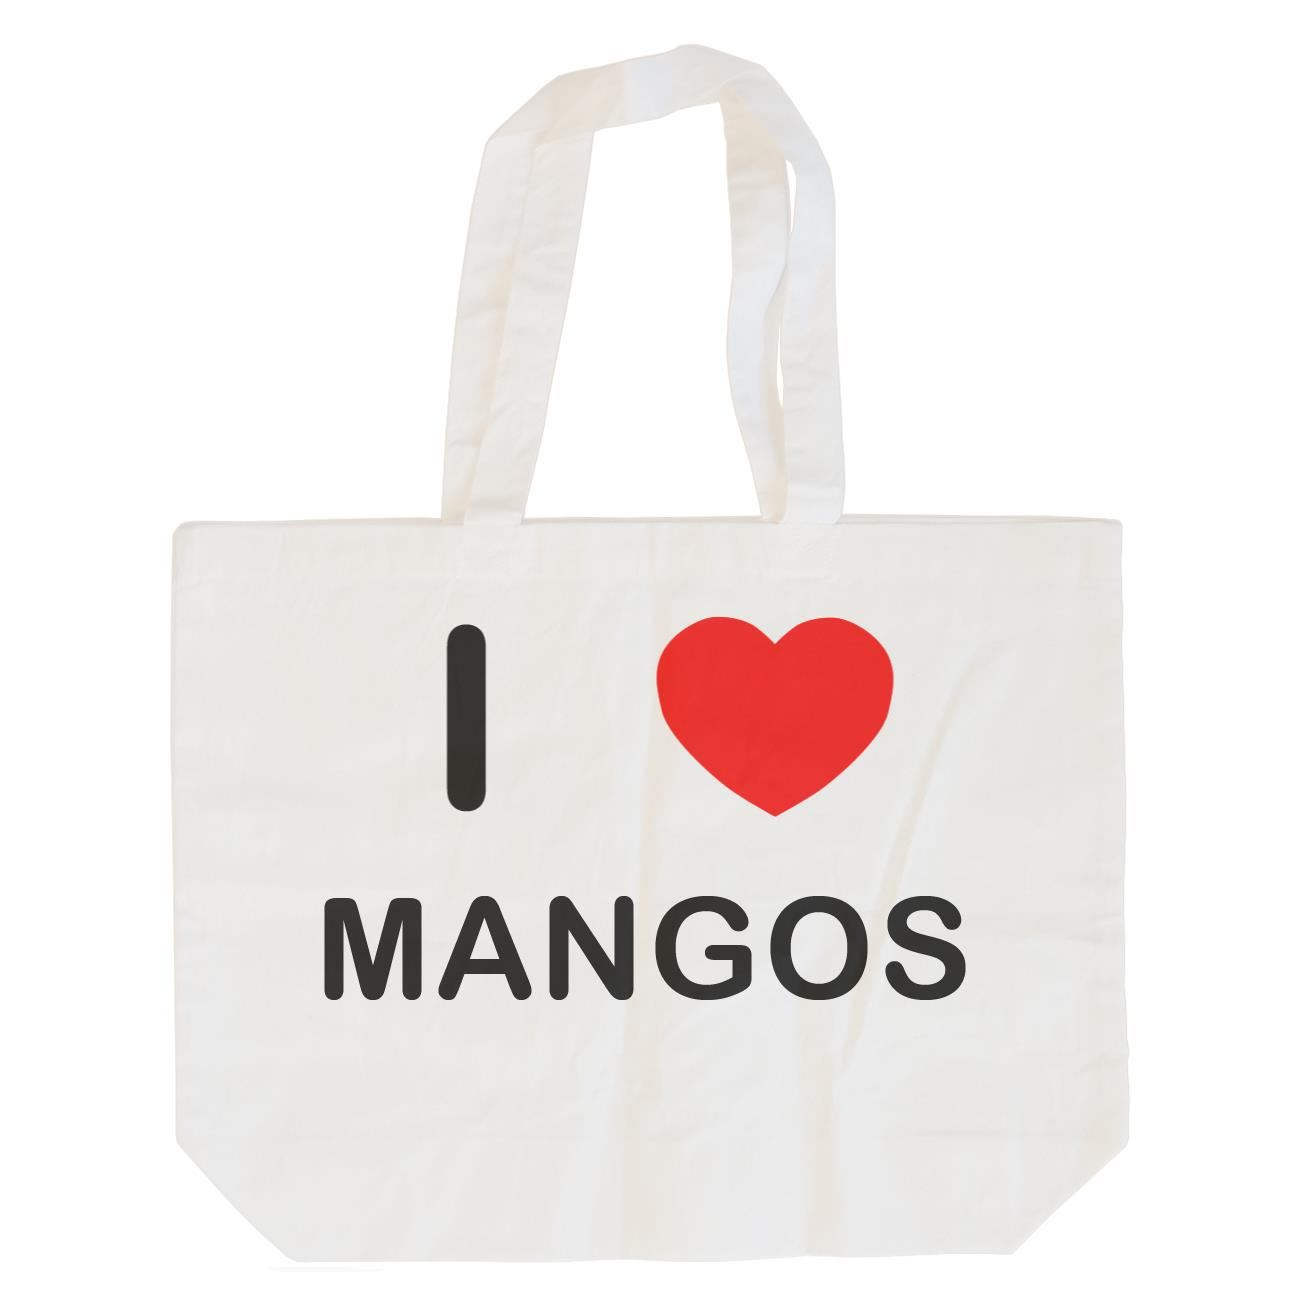 I Love Mangos - Cotton Bag | Size choice Tote, Shopper or Sling